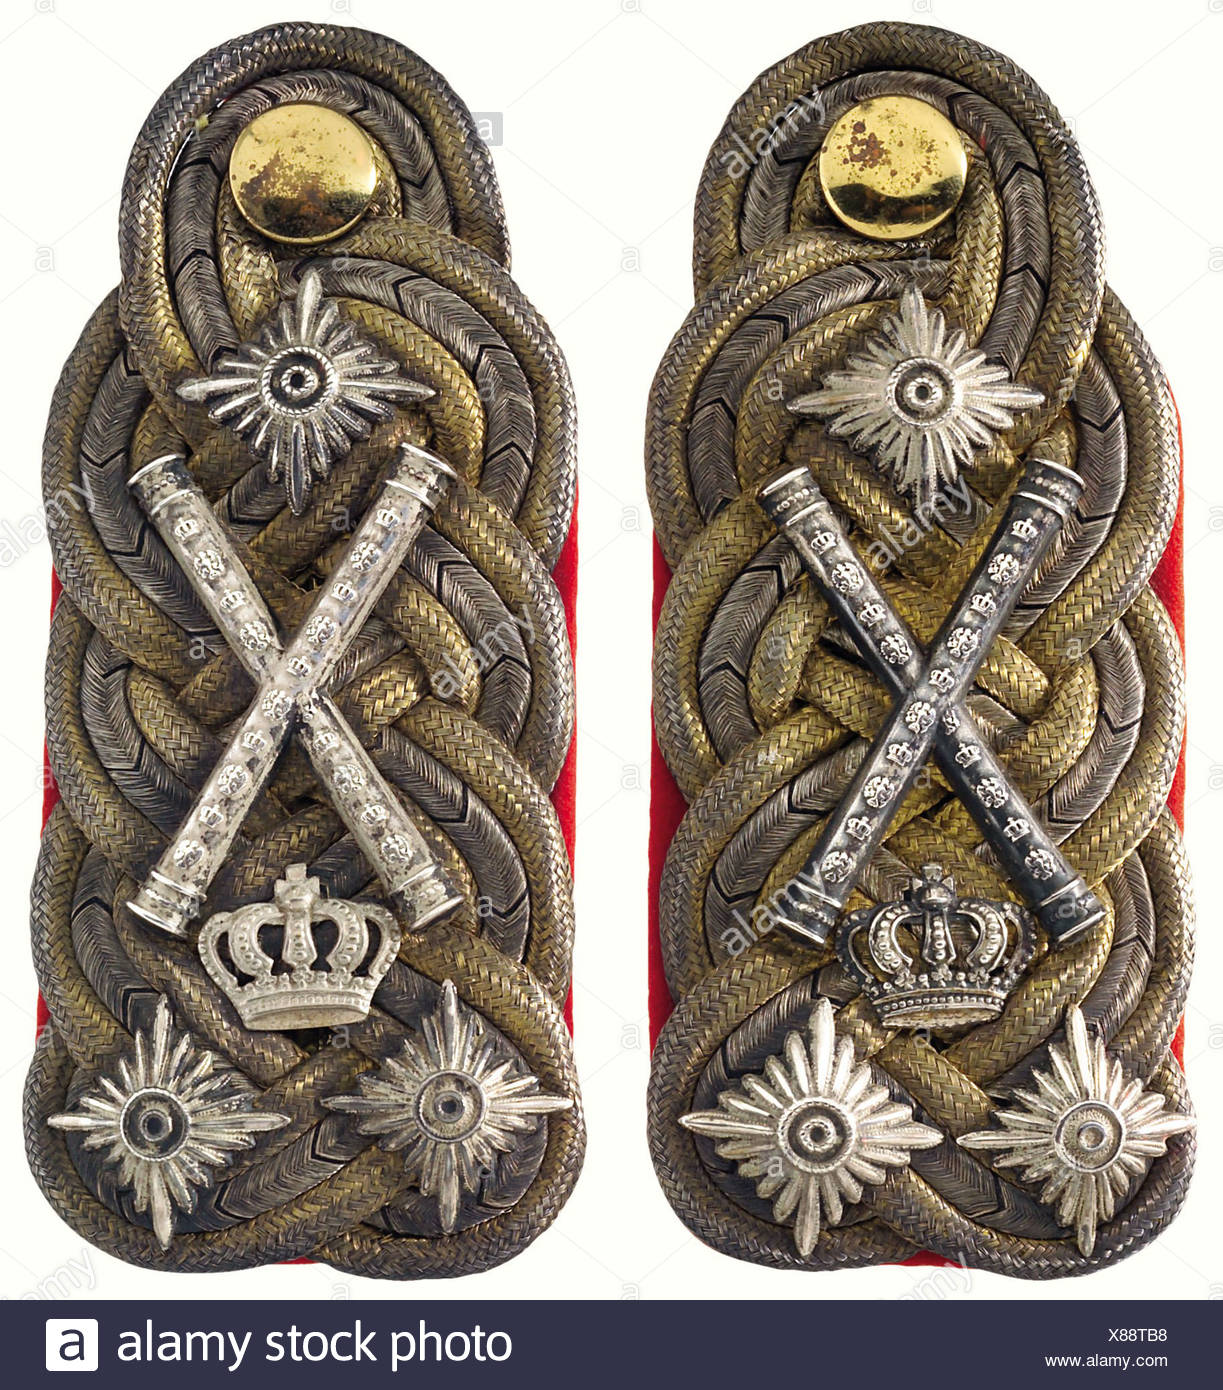 Baden: A pair of shoulder boards, worn by Grand Duke Friedrich I in his capacity as regimental proprietor of the 1st Baden Life Dragoon Regiment No. 20. Insignia of a full general holding the rank of field marshal, worn from 1856 to 1907. Red background, three rank stars, crossed field marshal's batons and a crown. No moth damage. historic, historical, 1900s, 20th century, 19th century, uniform, uniforms, object, objects, stills, clipping, clippings, cut out, cut-out, cut-outs, Additional-Rights-Clearances-NA - Stock Image